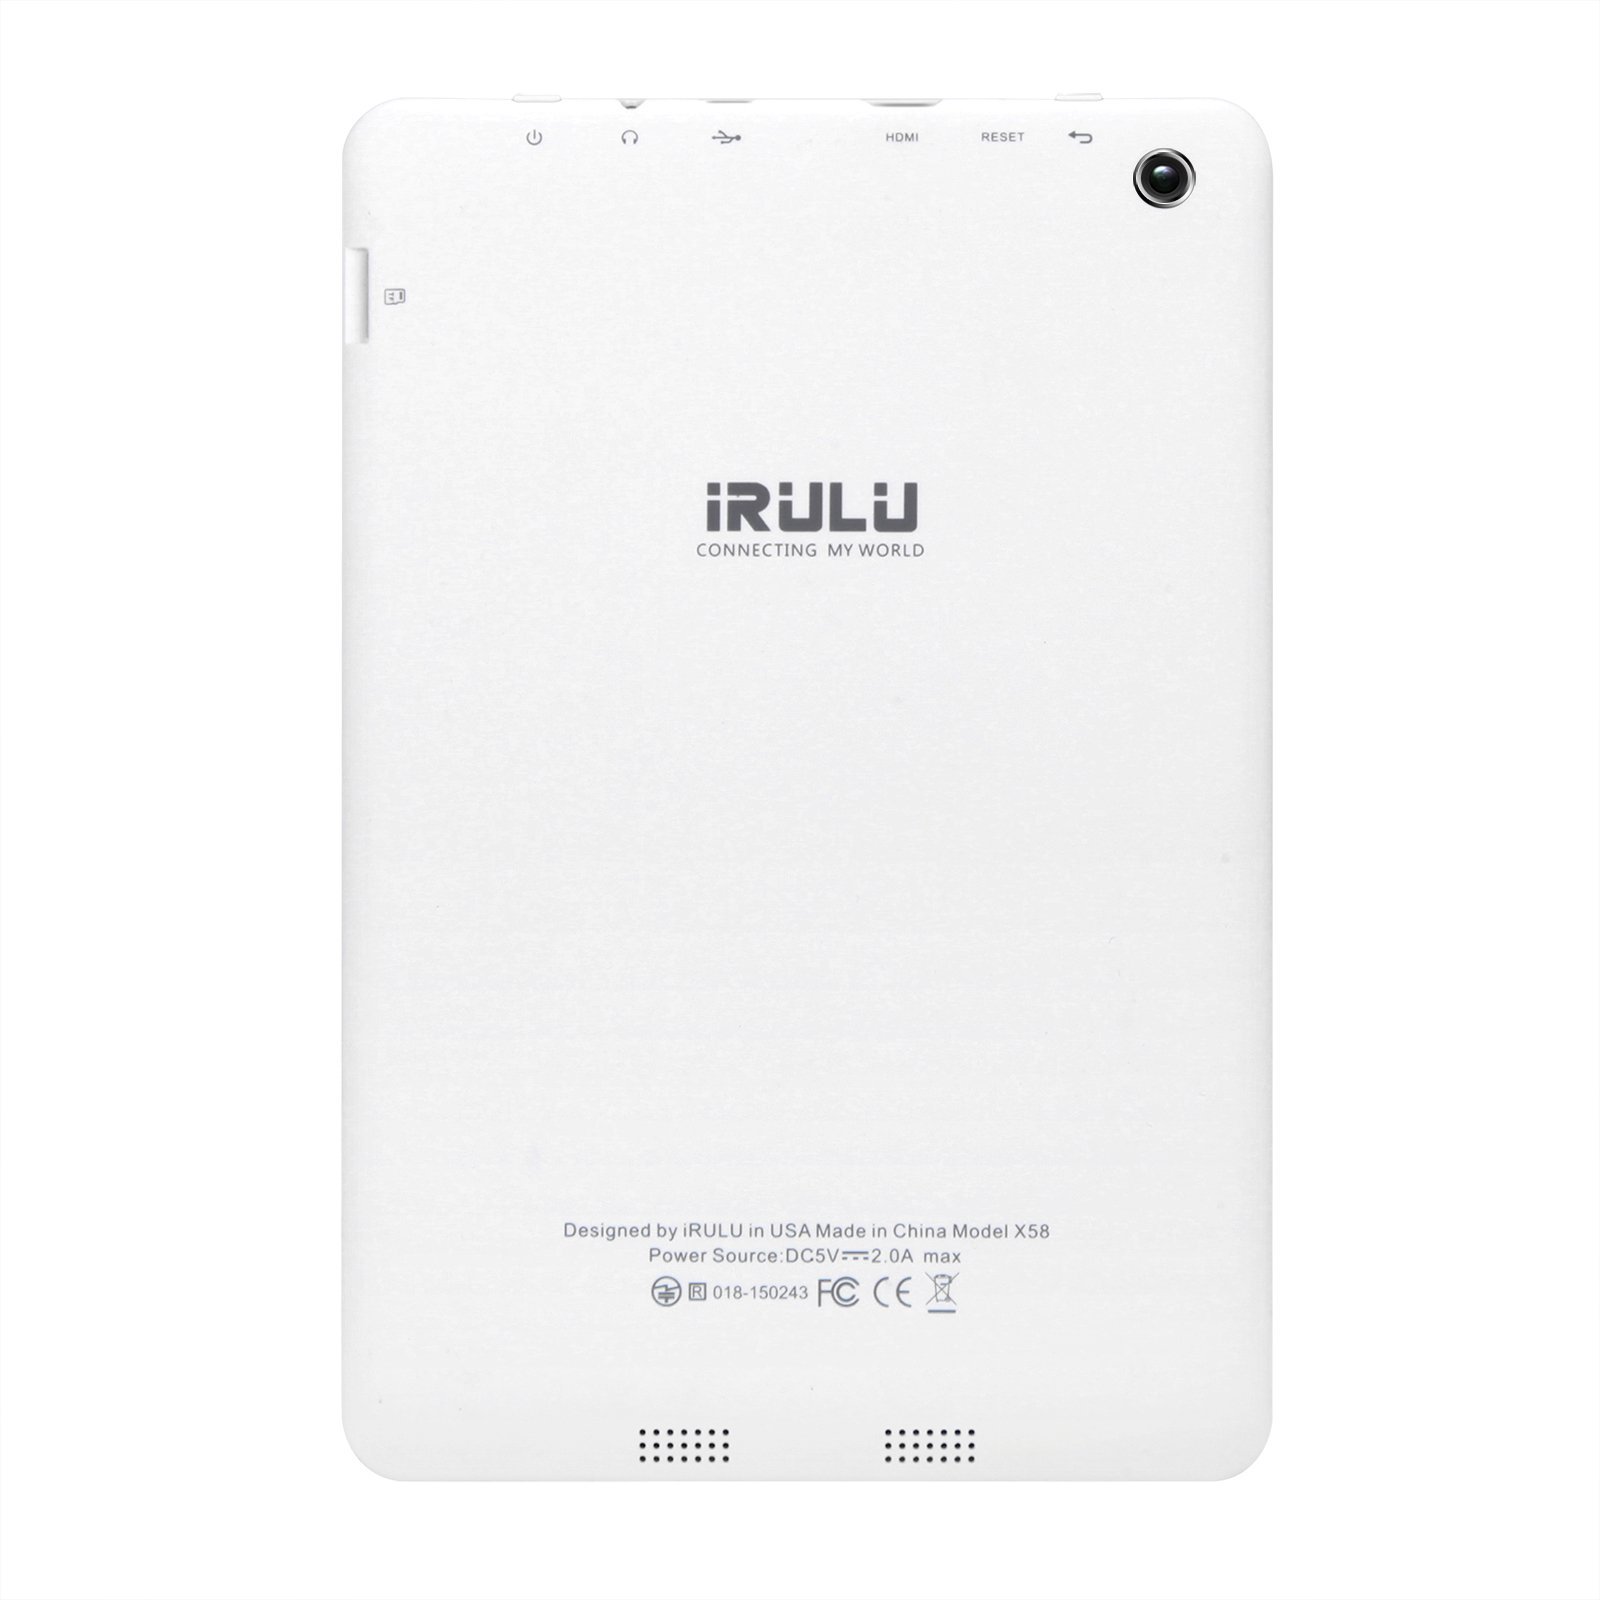 """7.85"""" Tablet Android Google 7.0, 1GB/16GB, 1.3gHz Quad Core,768x1024 IPS HD Display,Dual Camera, Microsoft Mini HDMI Bluetooth G-Sensor Supported,GMS Certified,iRULU eXpro 5 S Tablet (X5 S)-White by iRULU (Image #10)"""